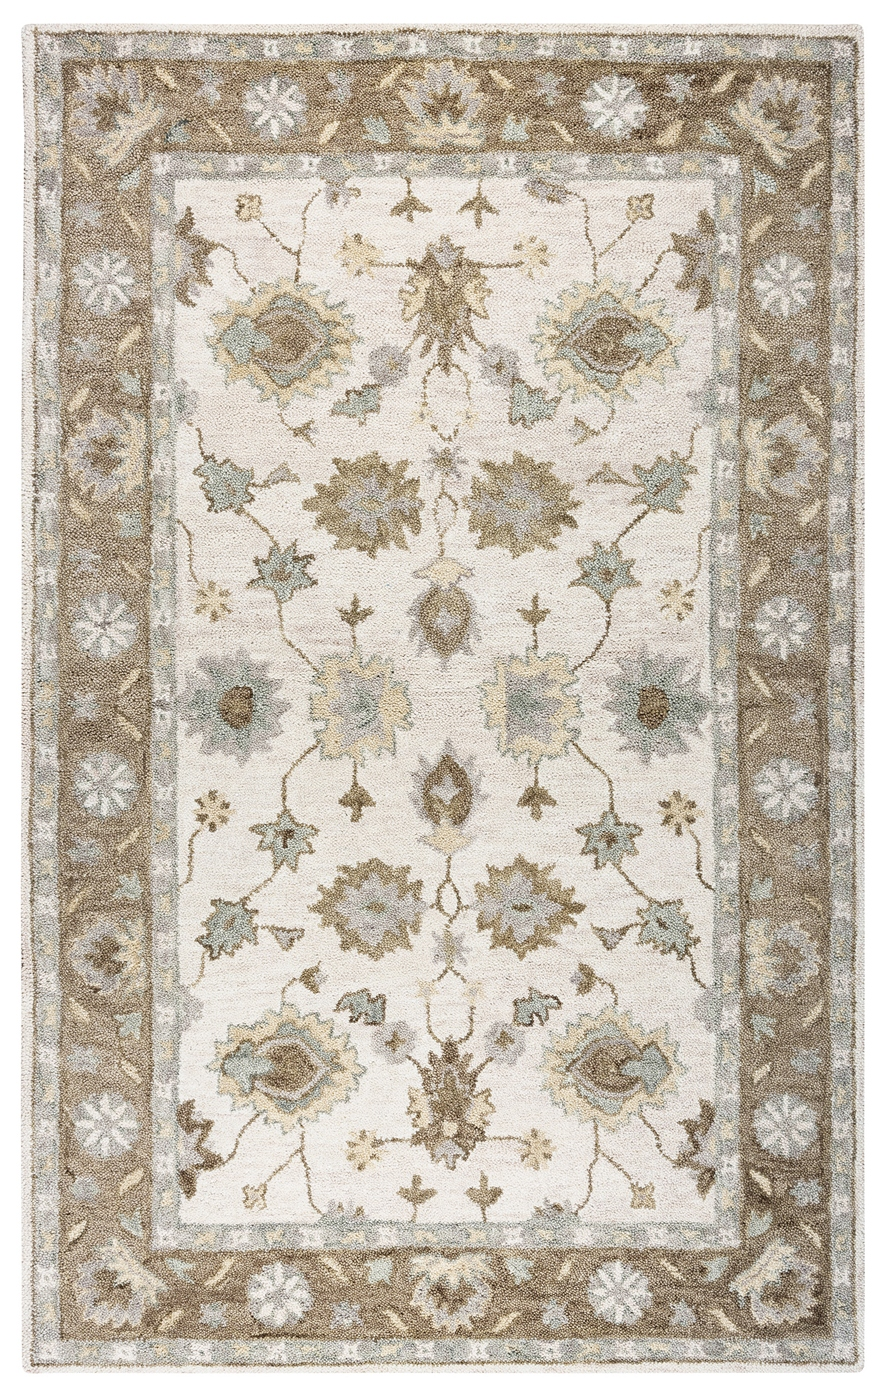 Leone Bordered Vines Wool Area Rug In Natural Amp Brown 9